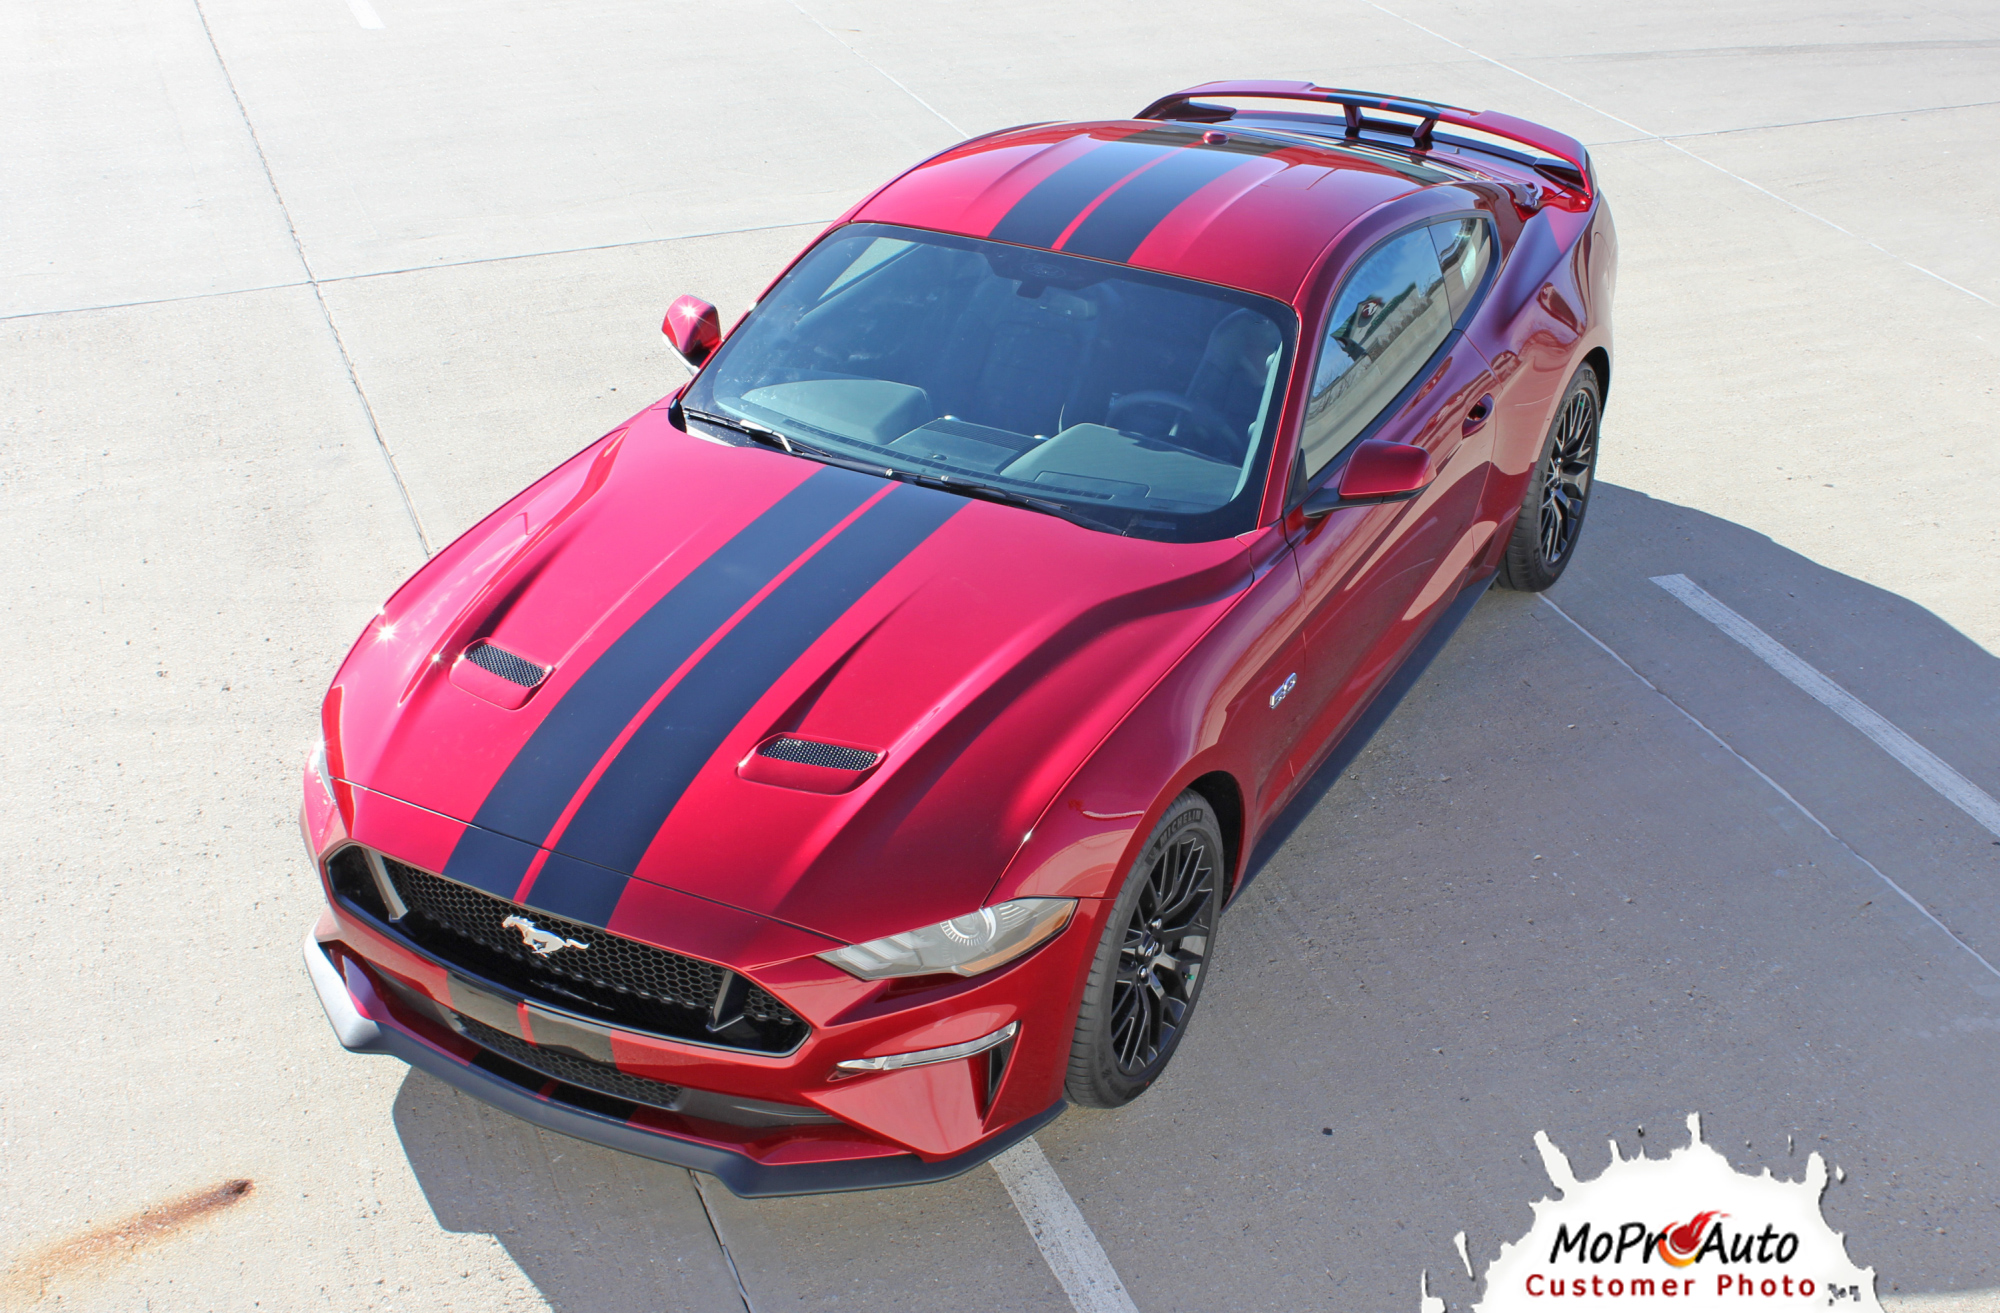 2018 STAGE RALLY SLIM OEM Style Racing Stripes for Ford Mustang - MoProAuto Pro Design Series Vinyl Graphics, Stripes and Decals Kit